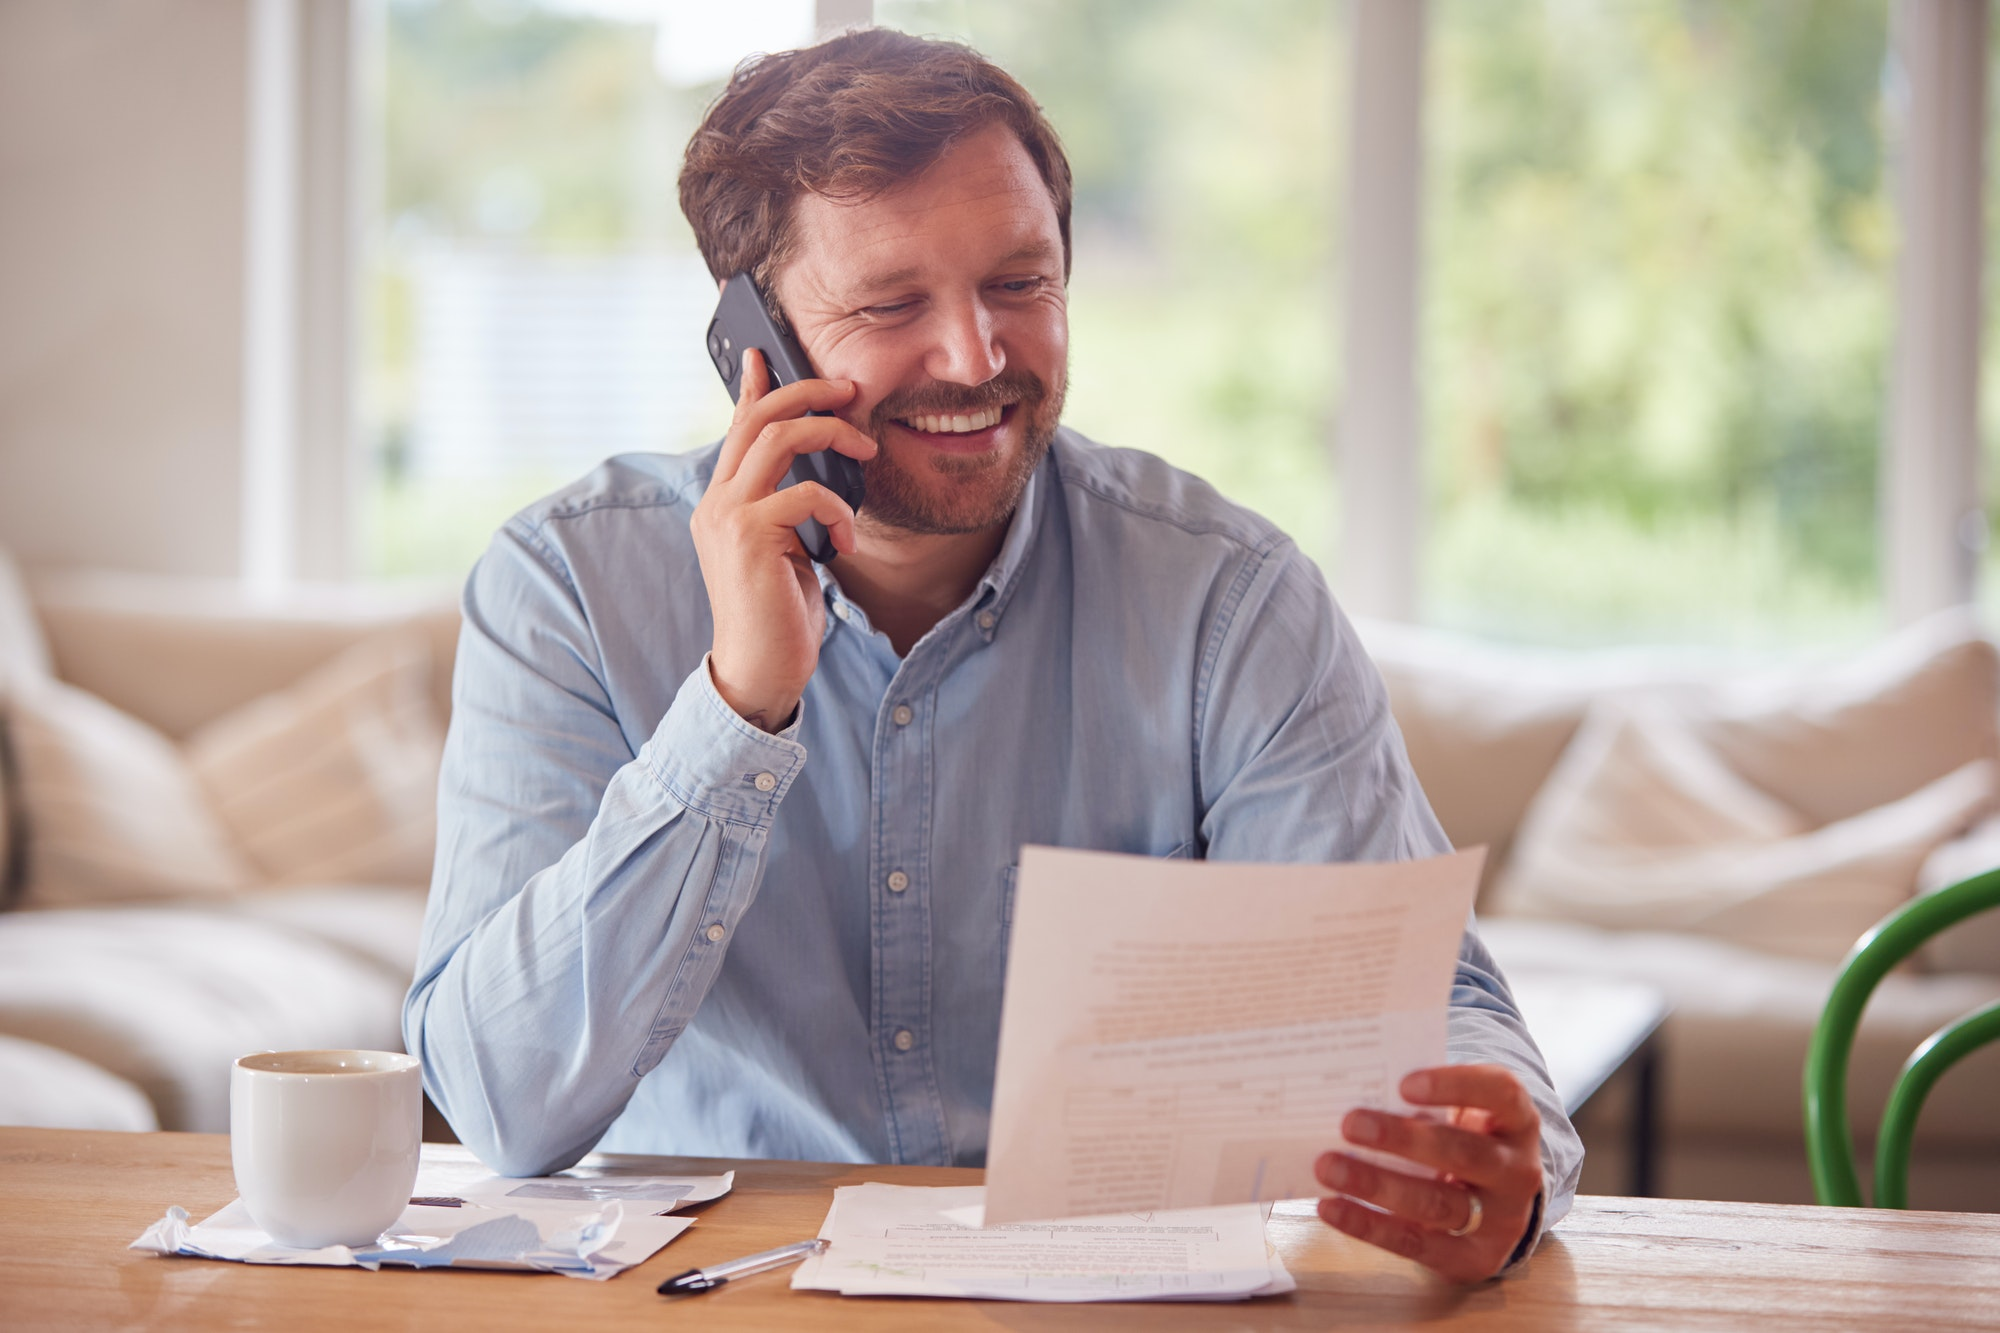 Smiling Man On Phone Call Sitting At Table At Home Reviewing Domestic Finances